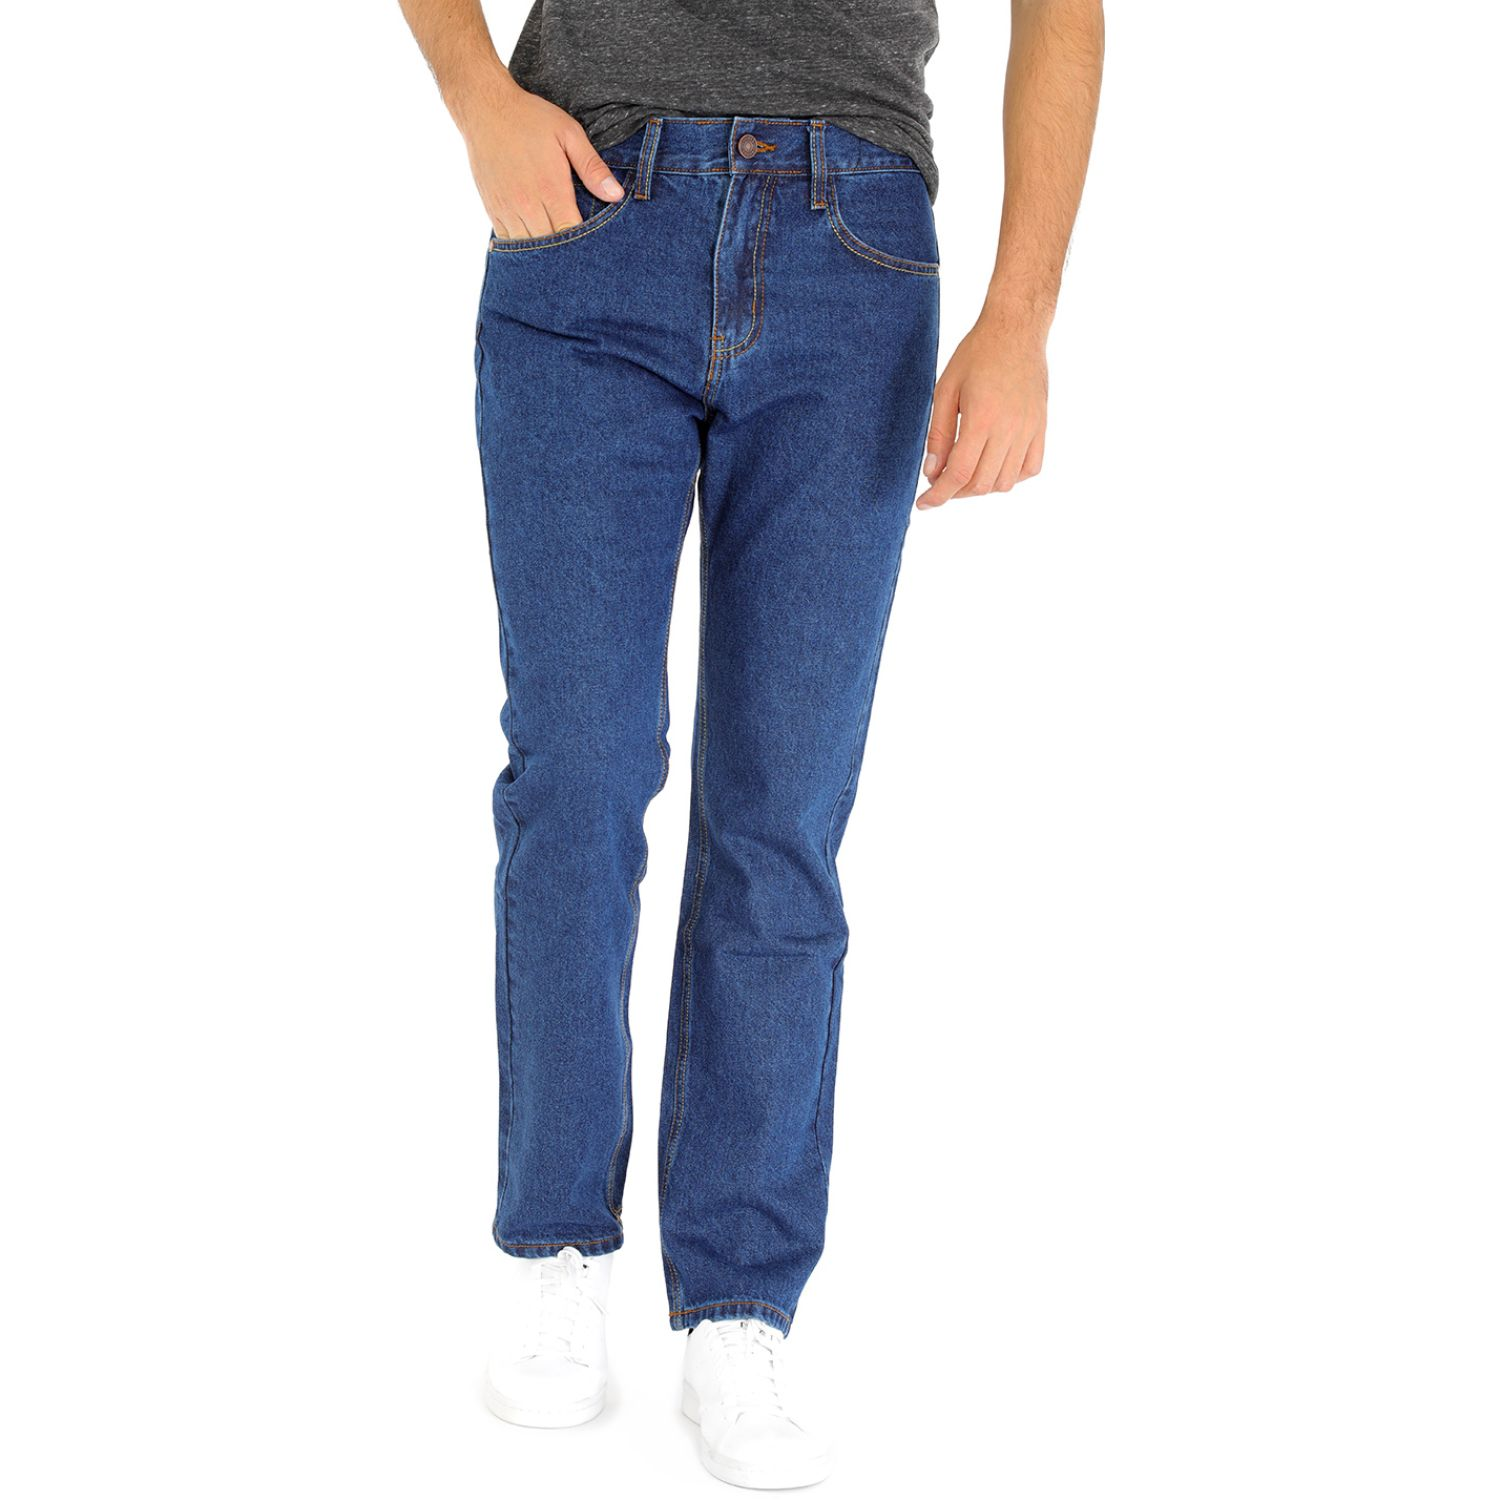 COTTONS JEANS ANGEL Stone Jeans